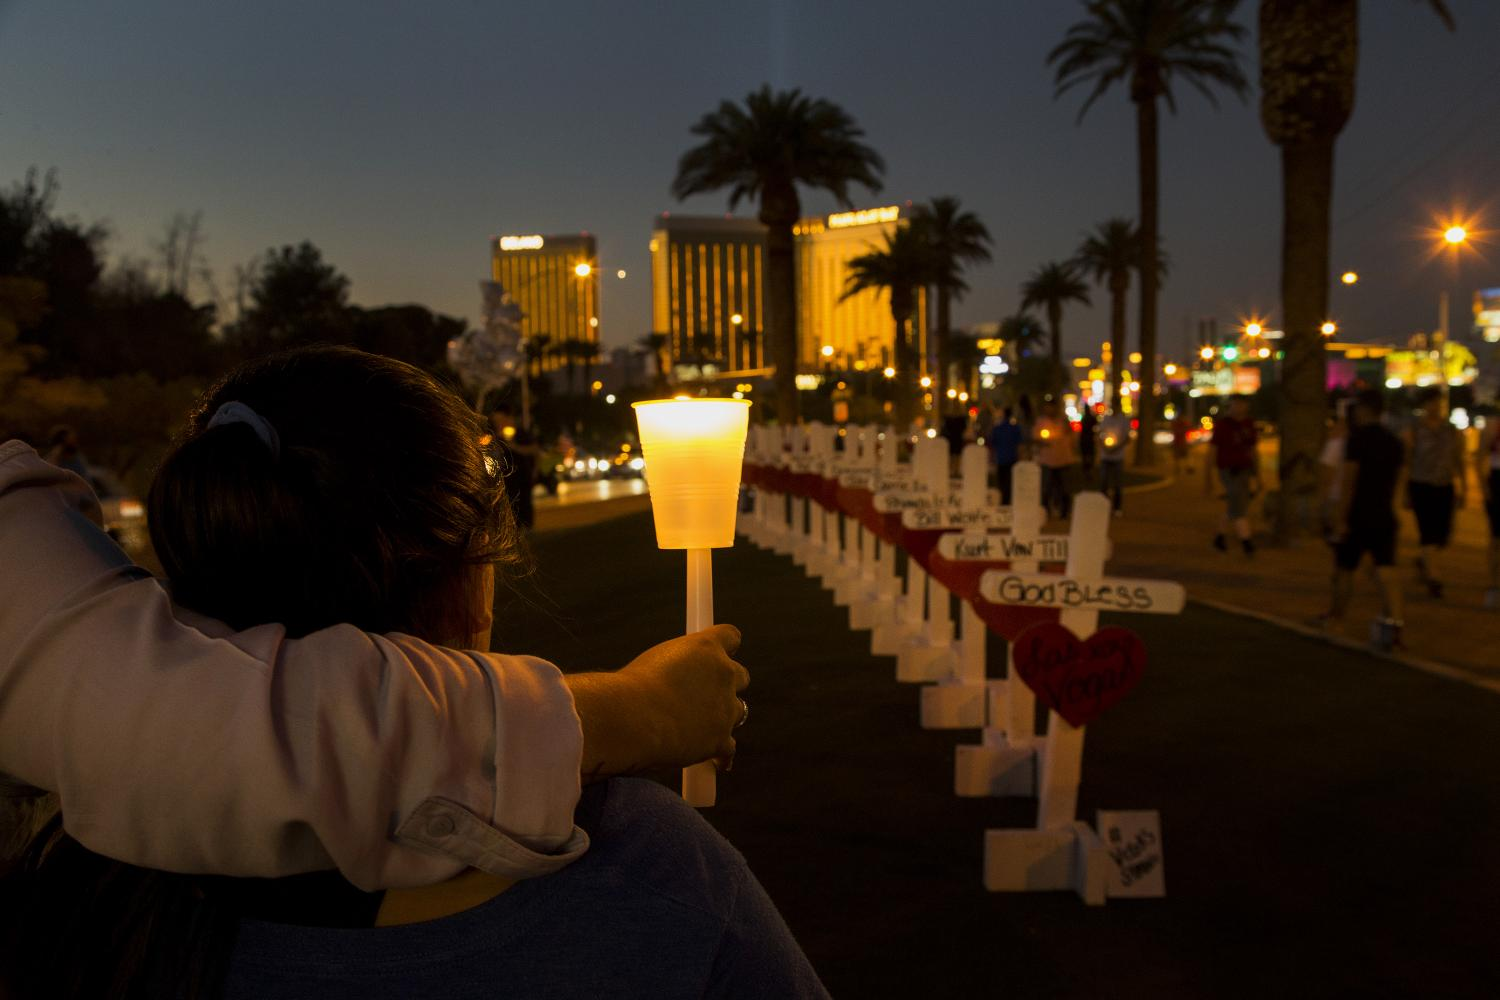 With wooden crosses bearing the names of those killed in the mass shooting, community members gather with candles to pay tribute to their loss on the median off Las Vegas Boulevard on October 5, 2017 in Las Vegas, Nevada. Mandalay Bay is in the background. Greg Zanis of Illinois drove all night to deliver the homemade crosses.